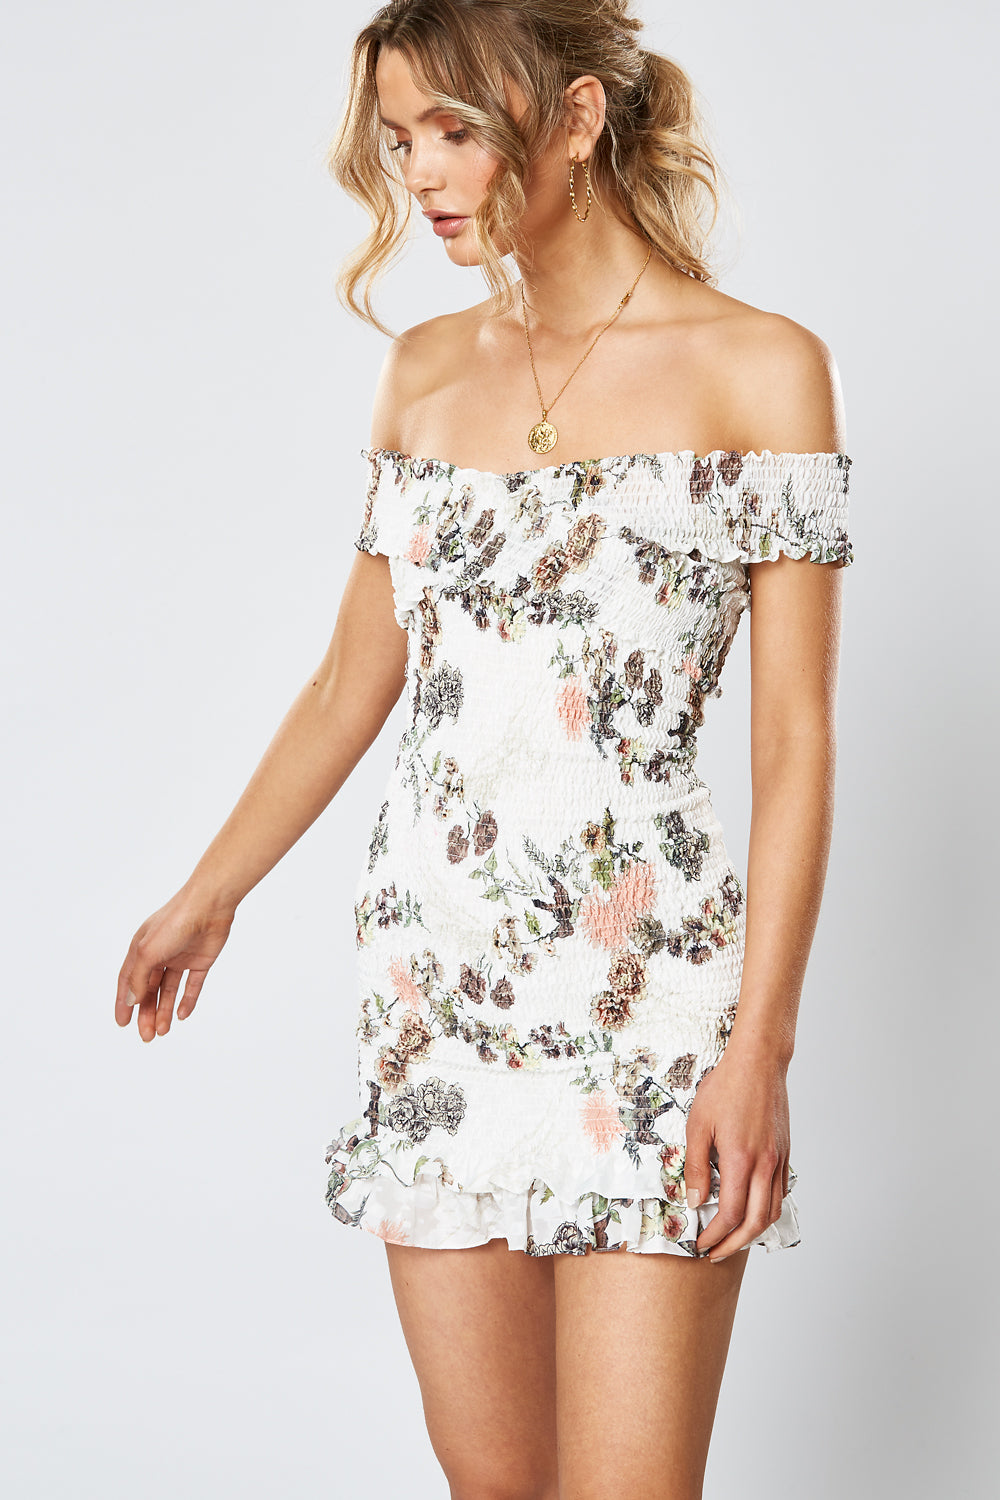 HUMMINGBIRD SHIRRING DRESS